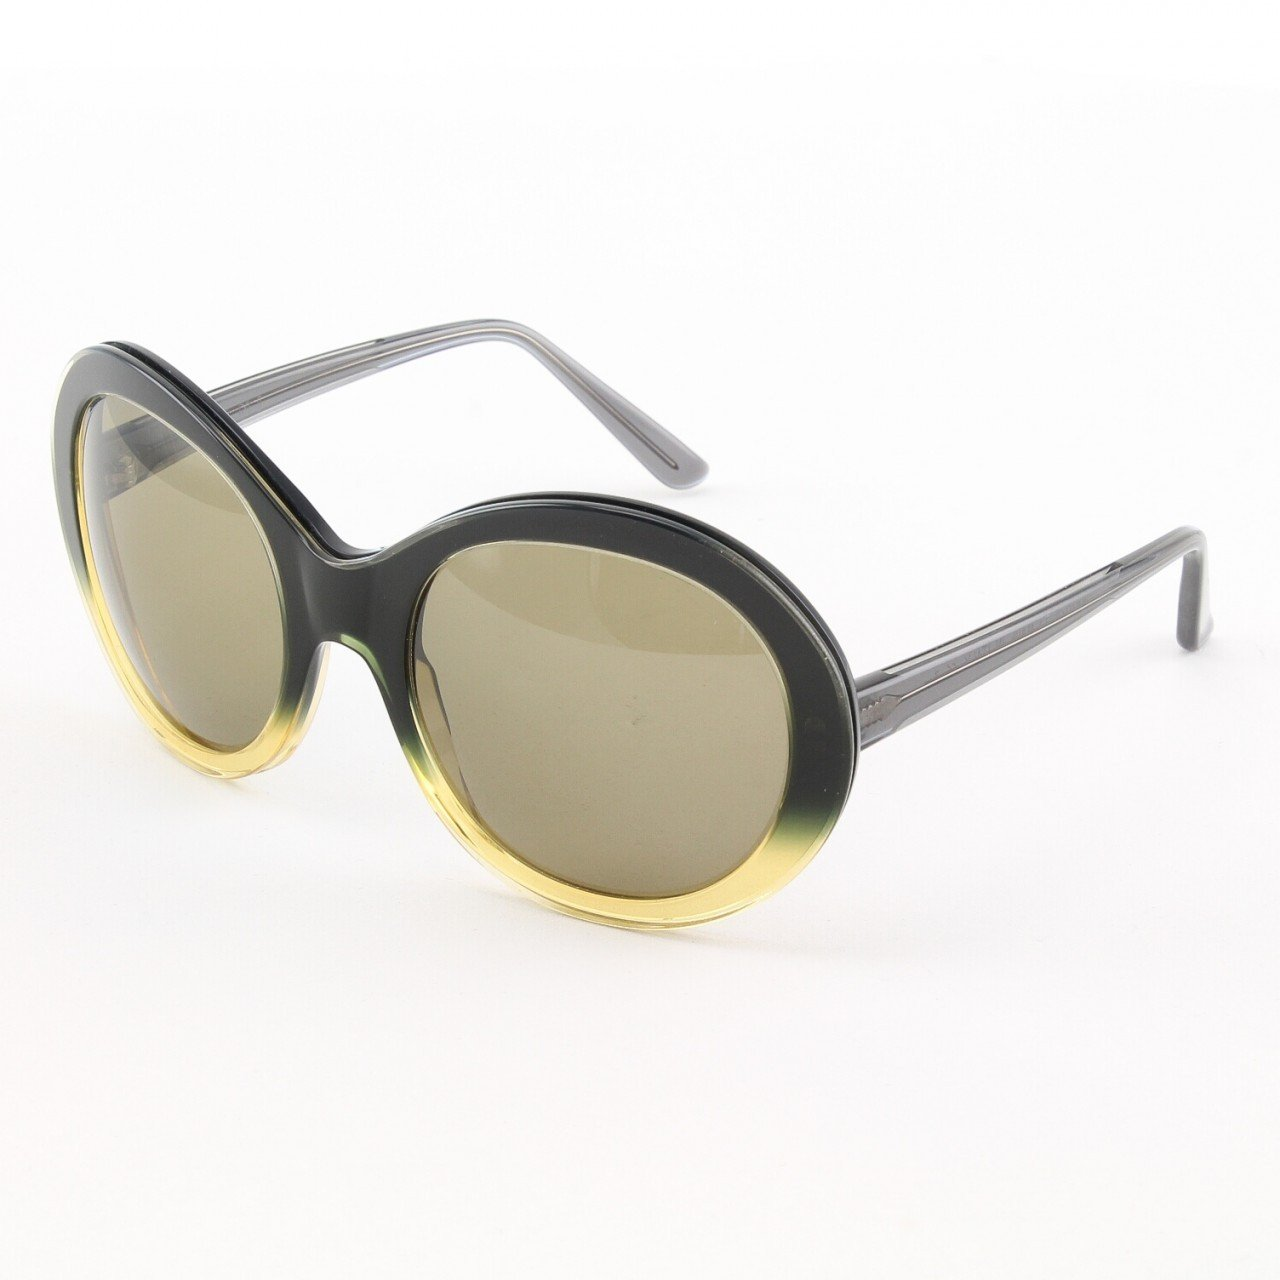 Marni MA162S Sunglasses Col. 13 Oversized Dark Navy, Yellow, Clear Frame with Amber Gradient Lenses